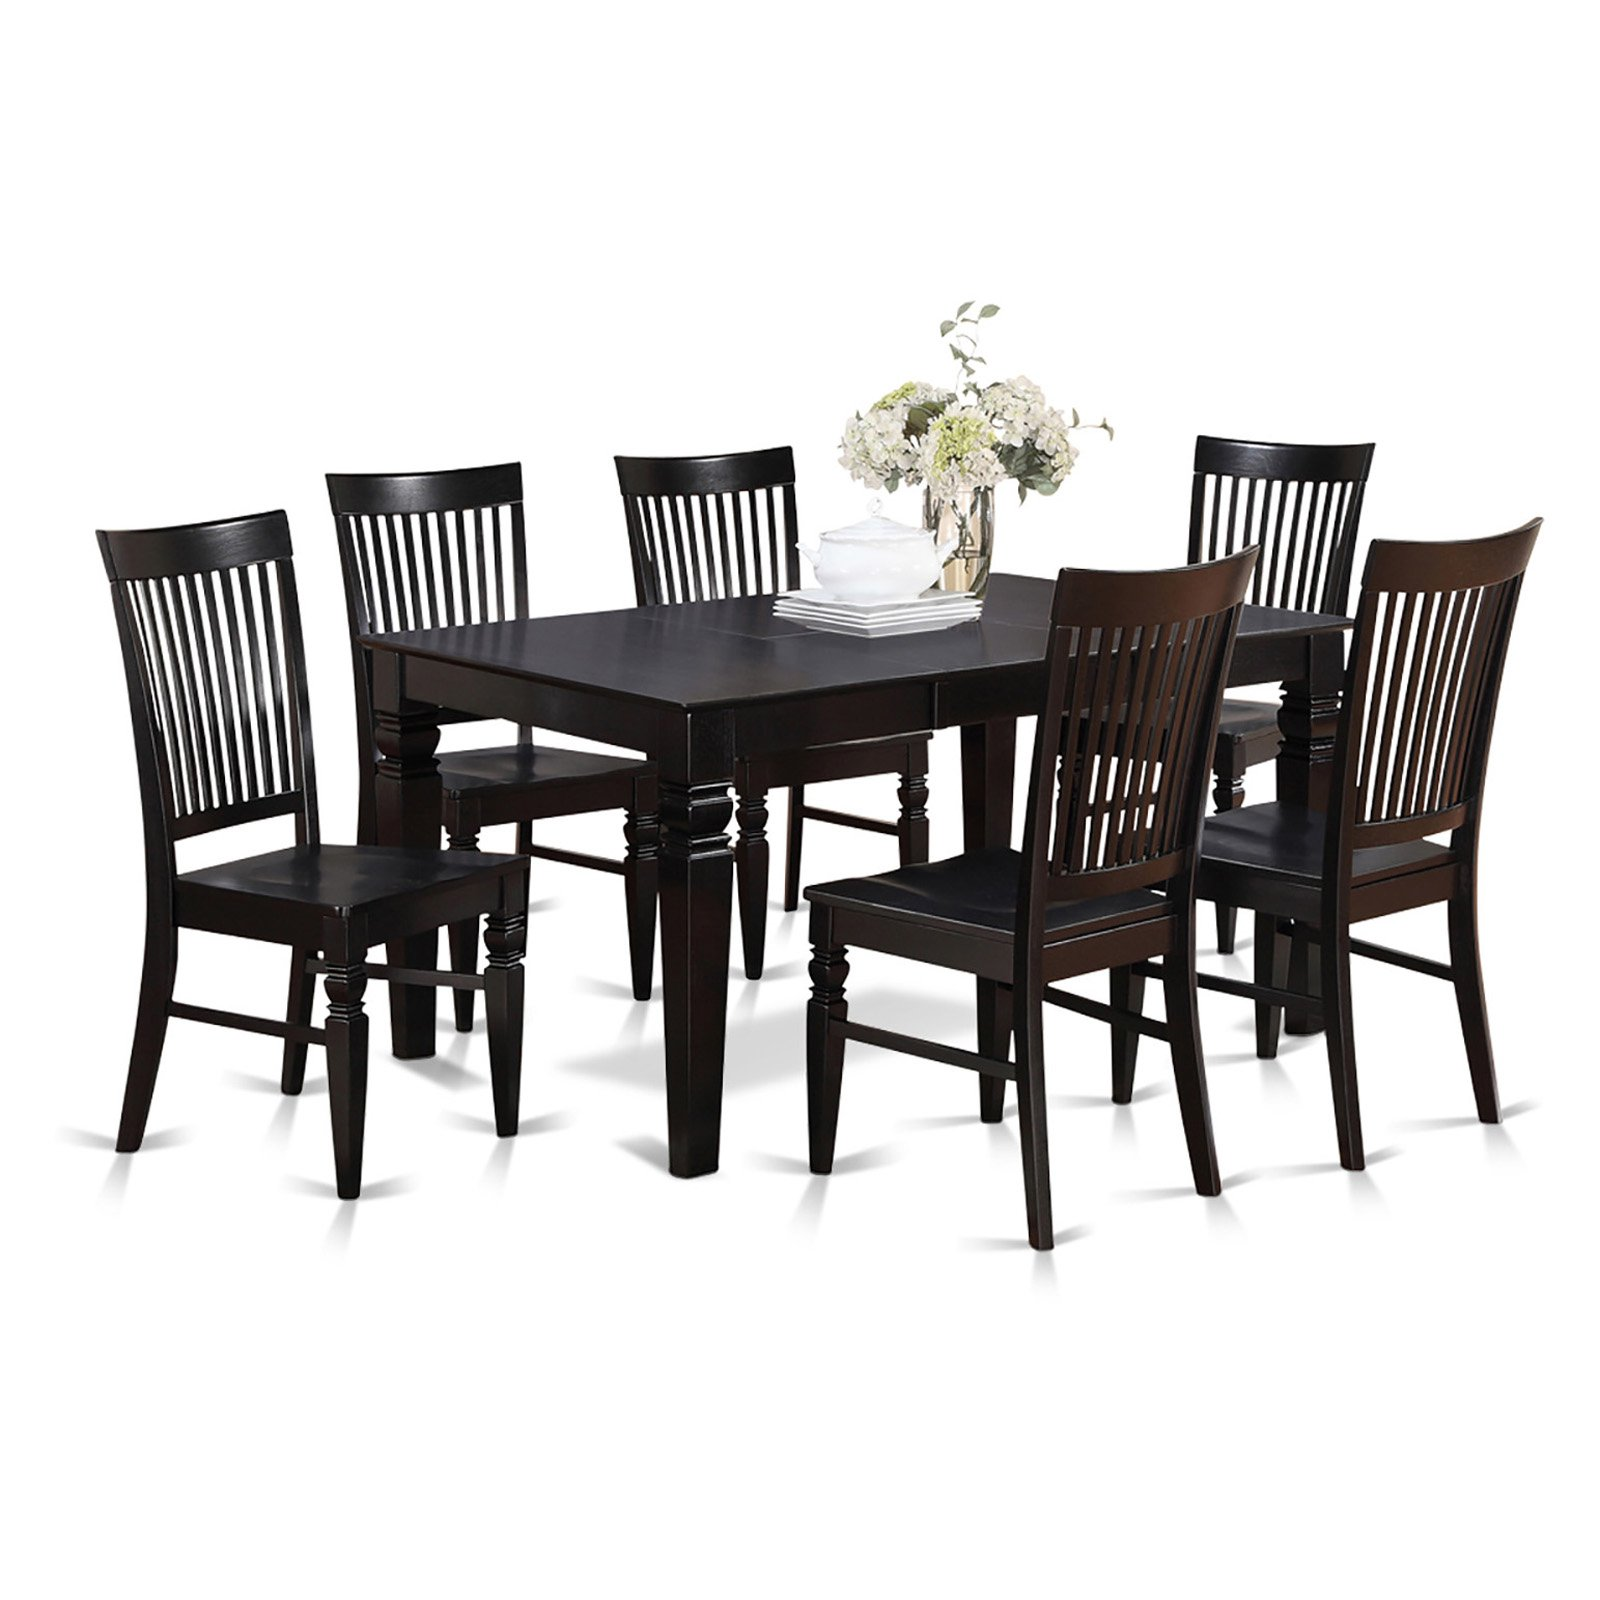 East West Furniture Weston 7 Piece Thin Slat Back Dining Table Set